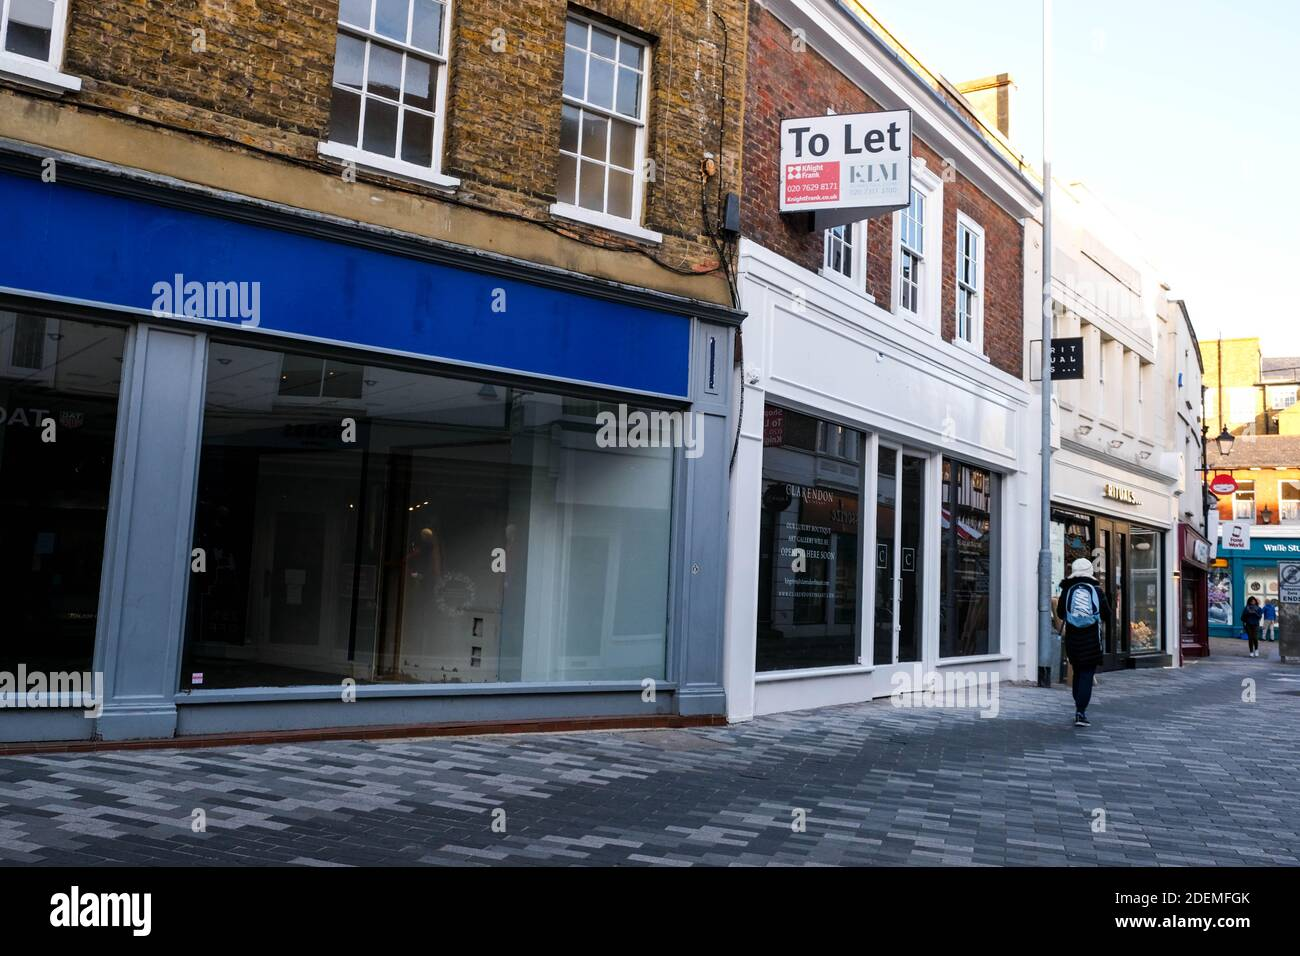 London UK, December 01 2020, Empty Retail High Street Shops Closing Down Due To Covid-19 Business Failues Stock Photo